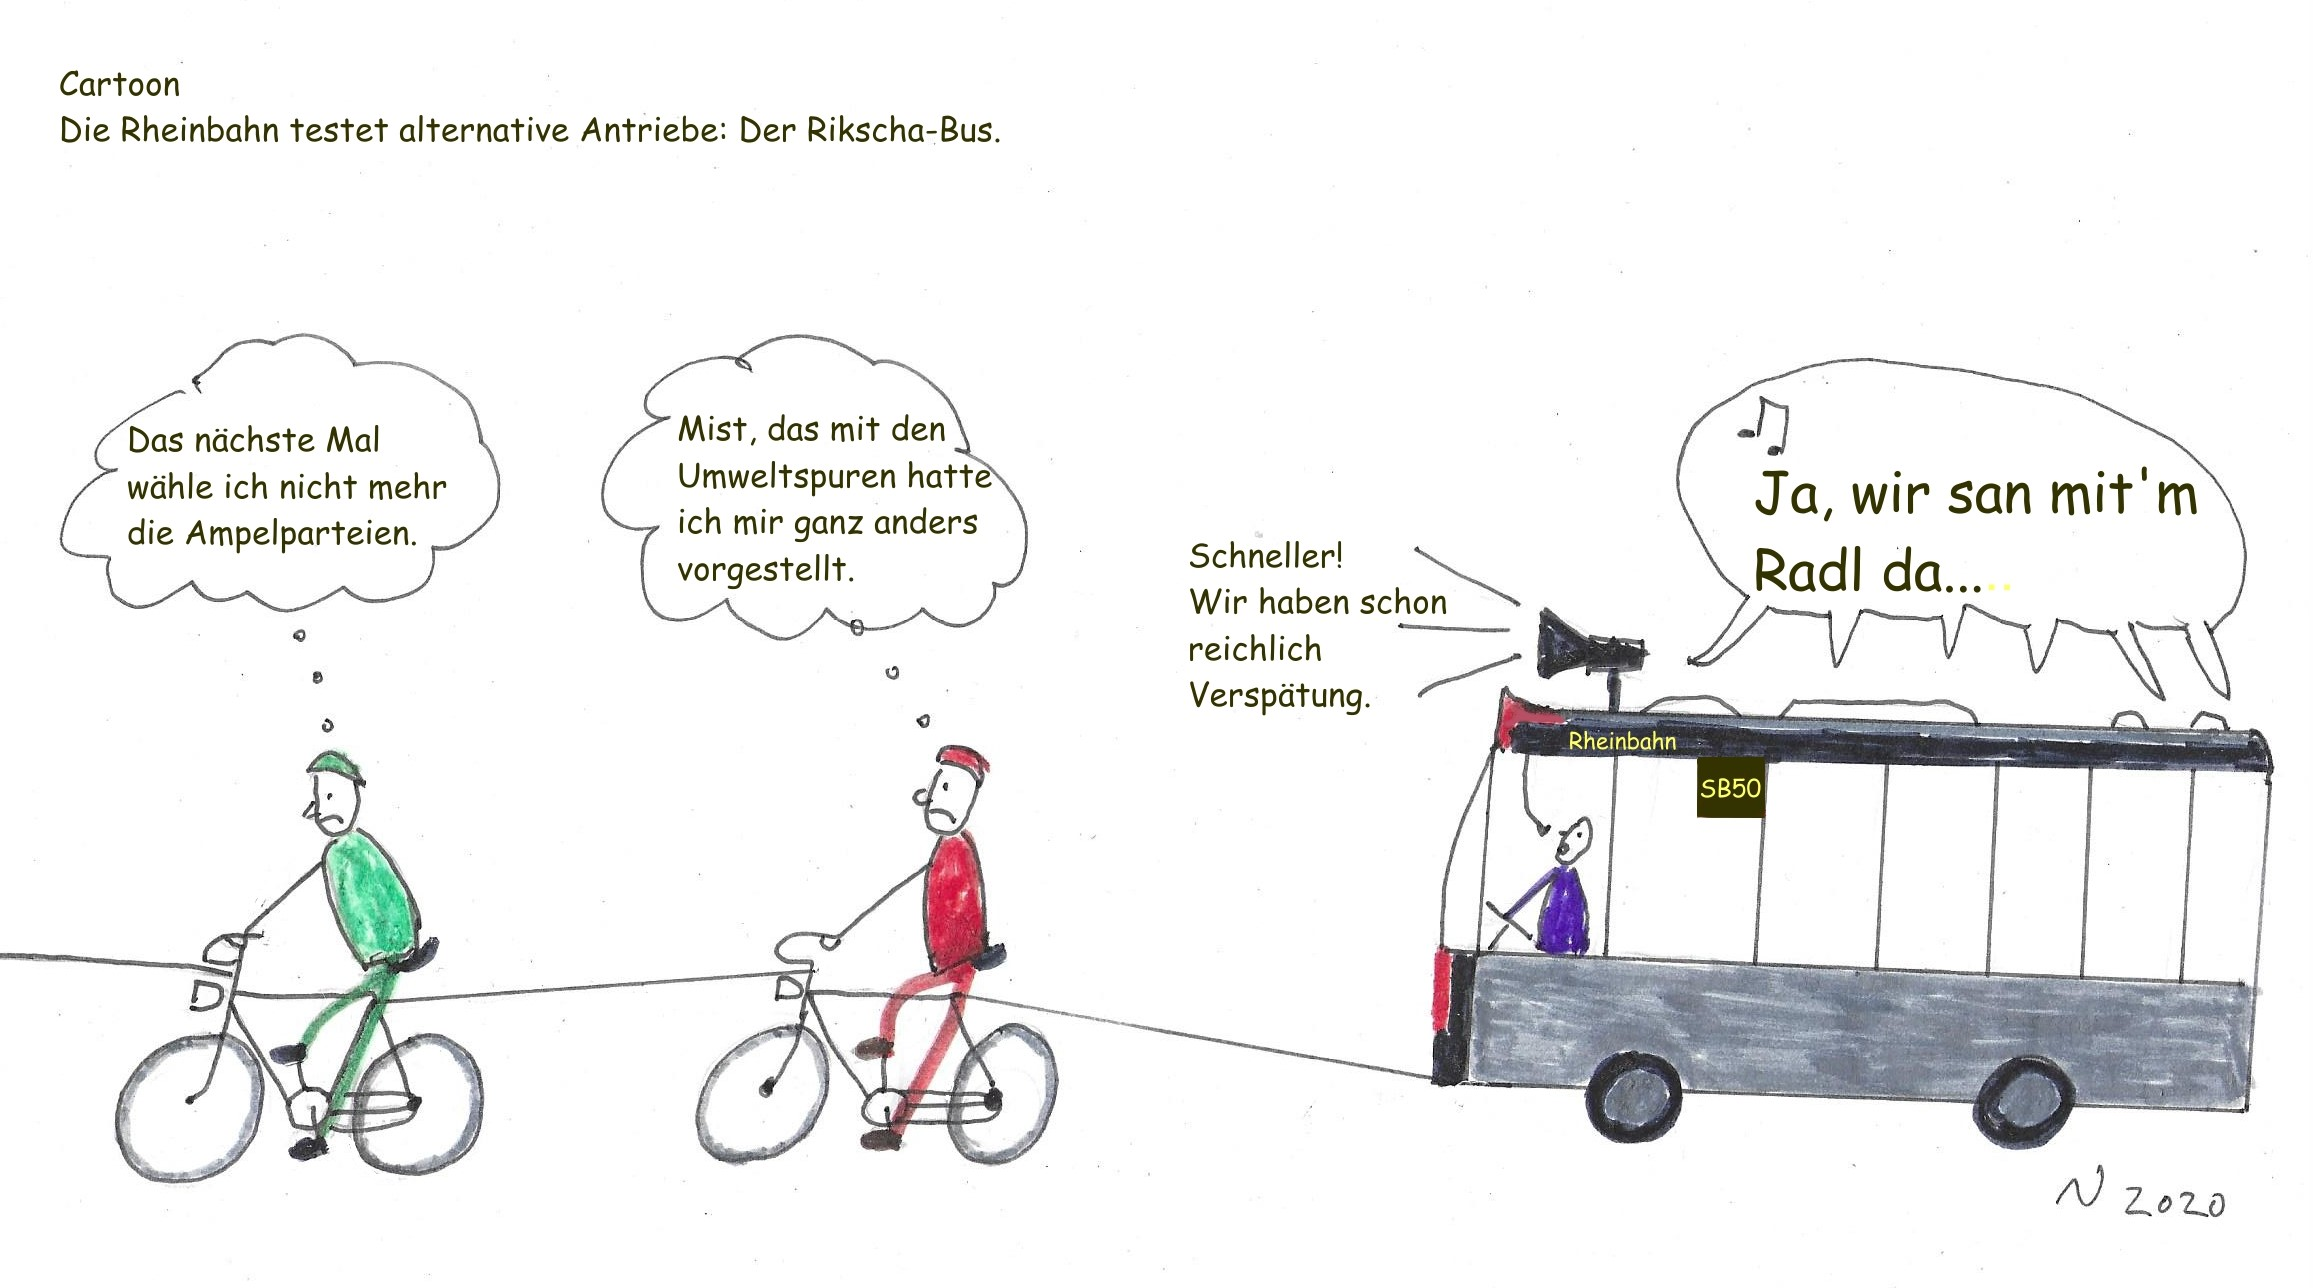 Rikscha Bus Cartoon